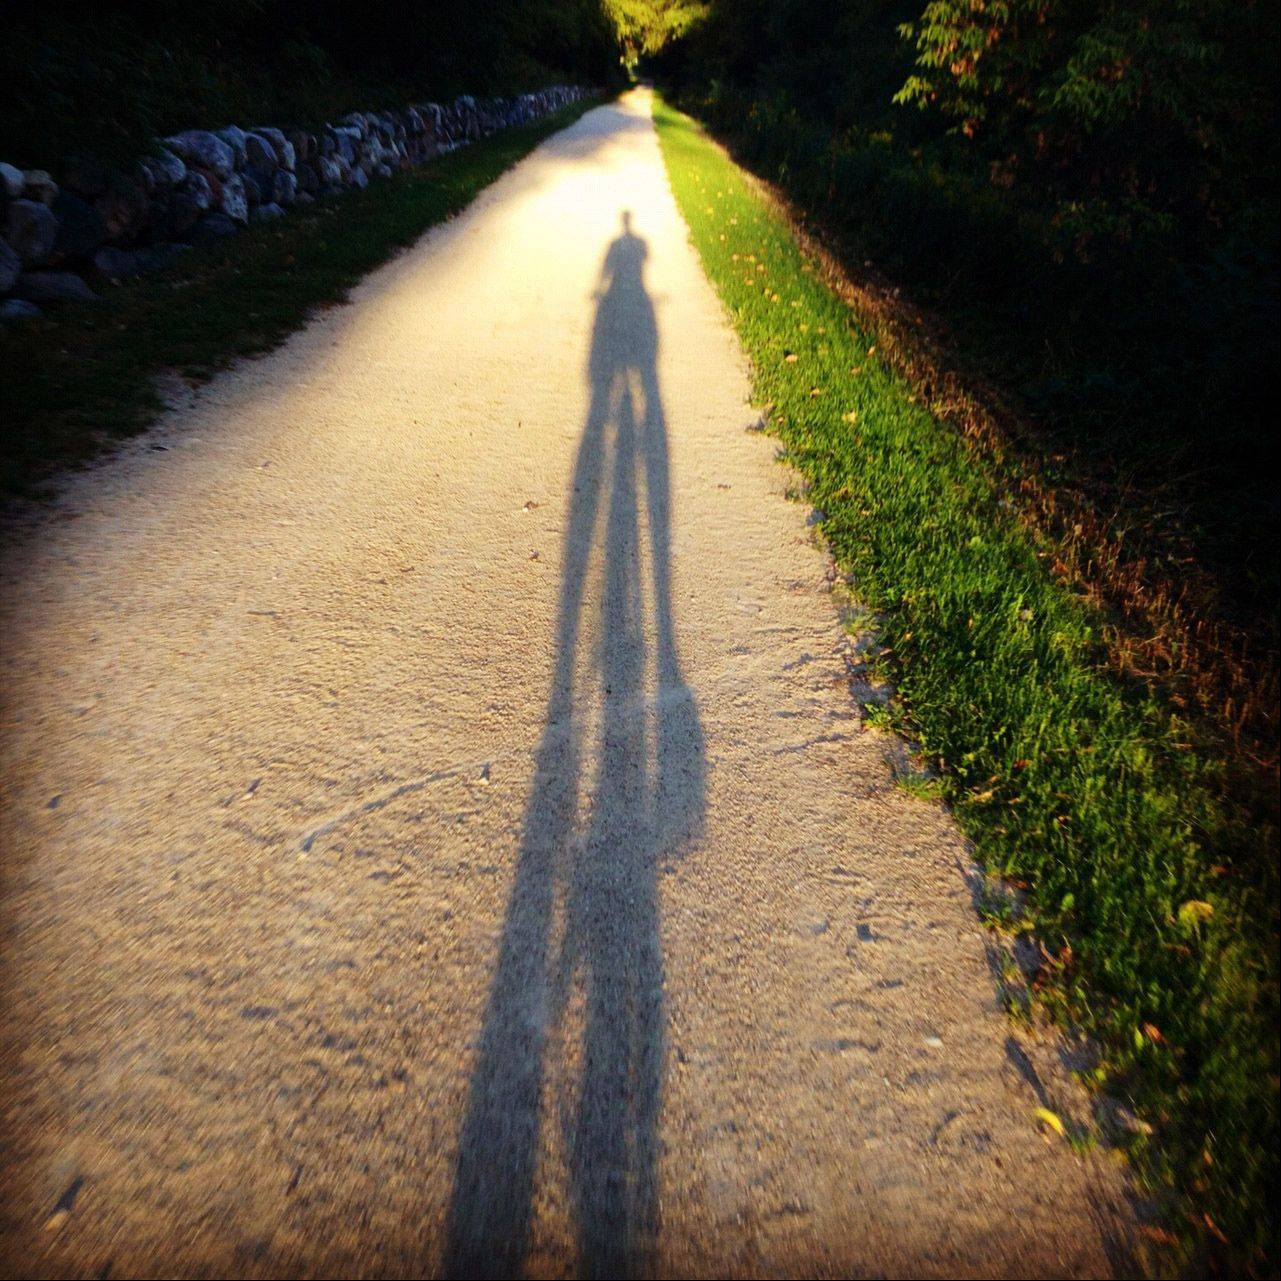 A shadow of a rider and bike falls across the Middlefork Savannah bike path during the late afternoon on September 12th.